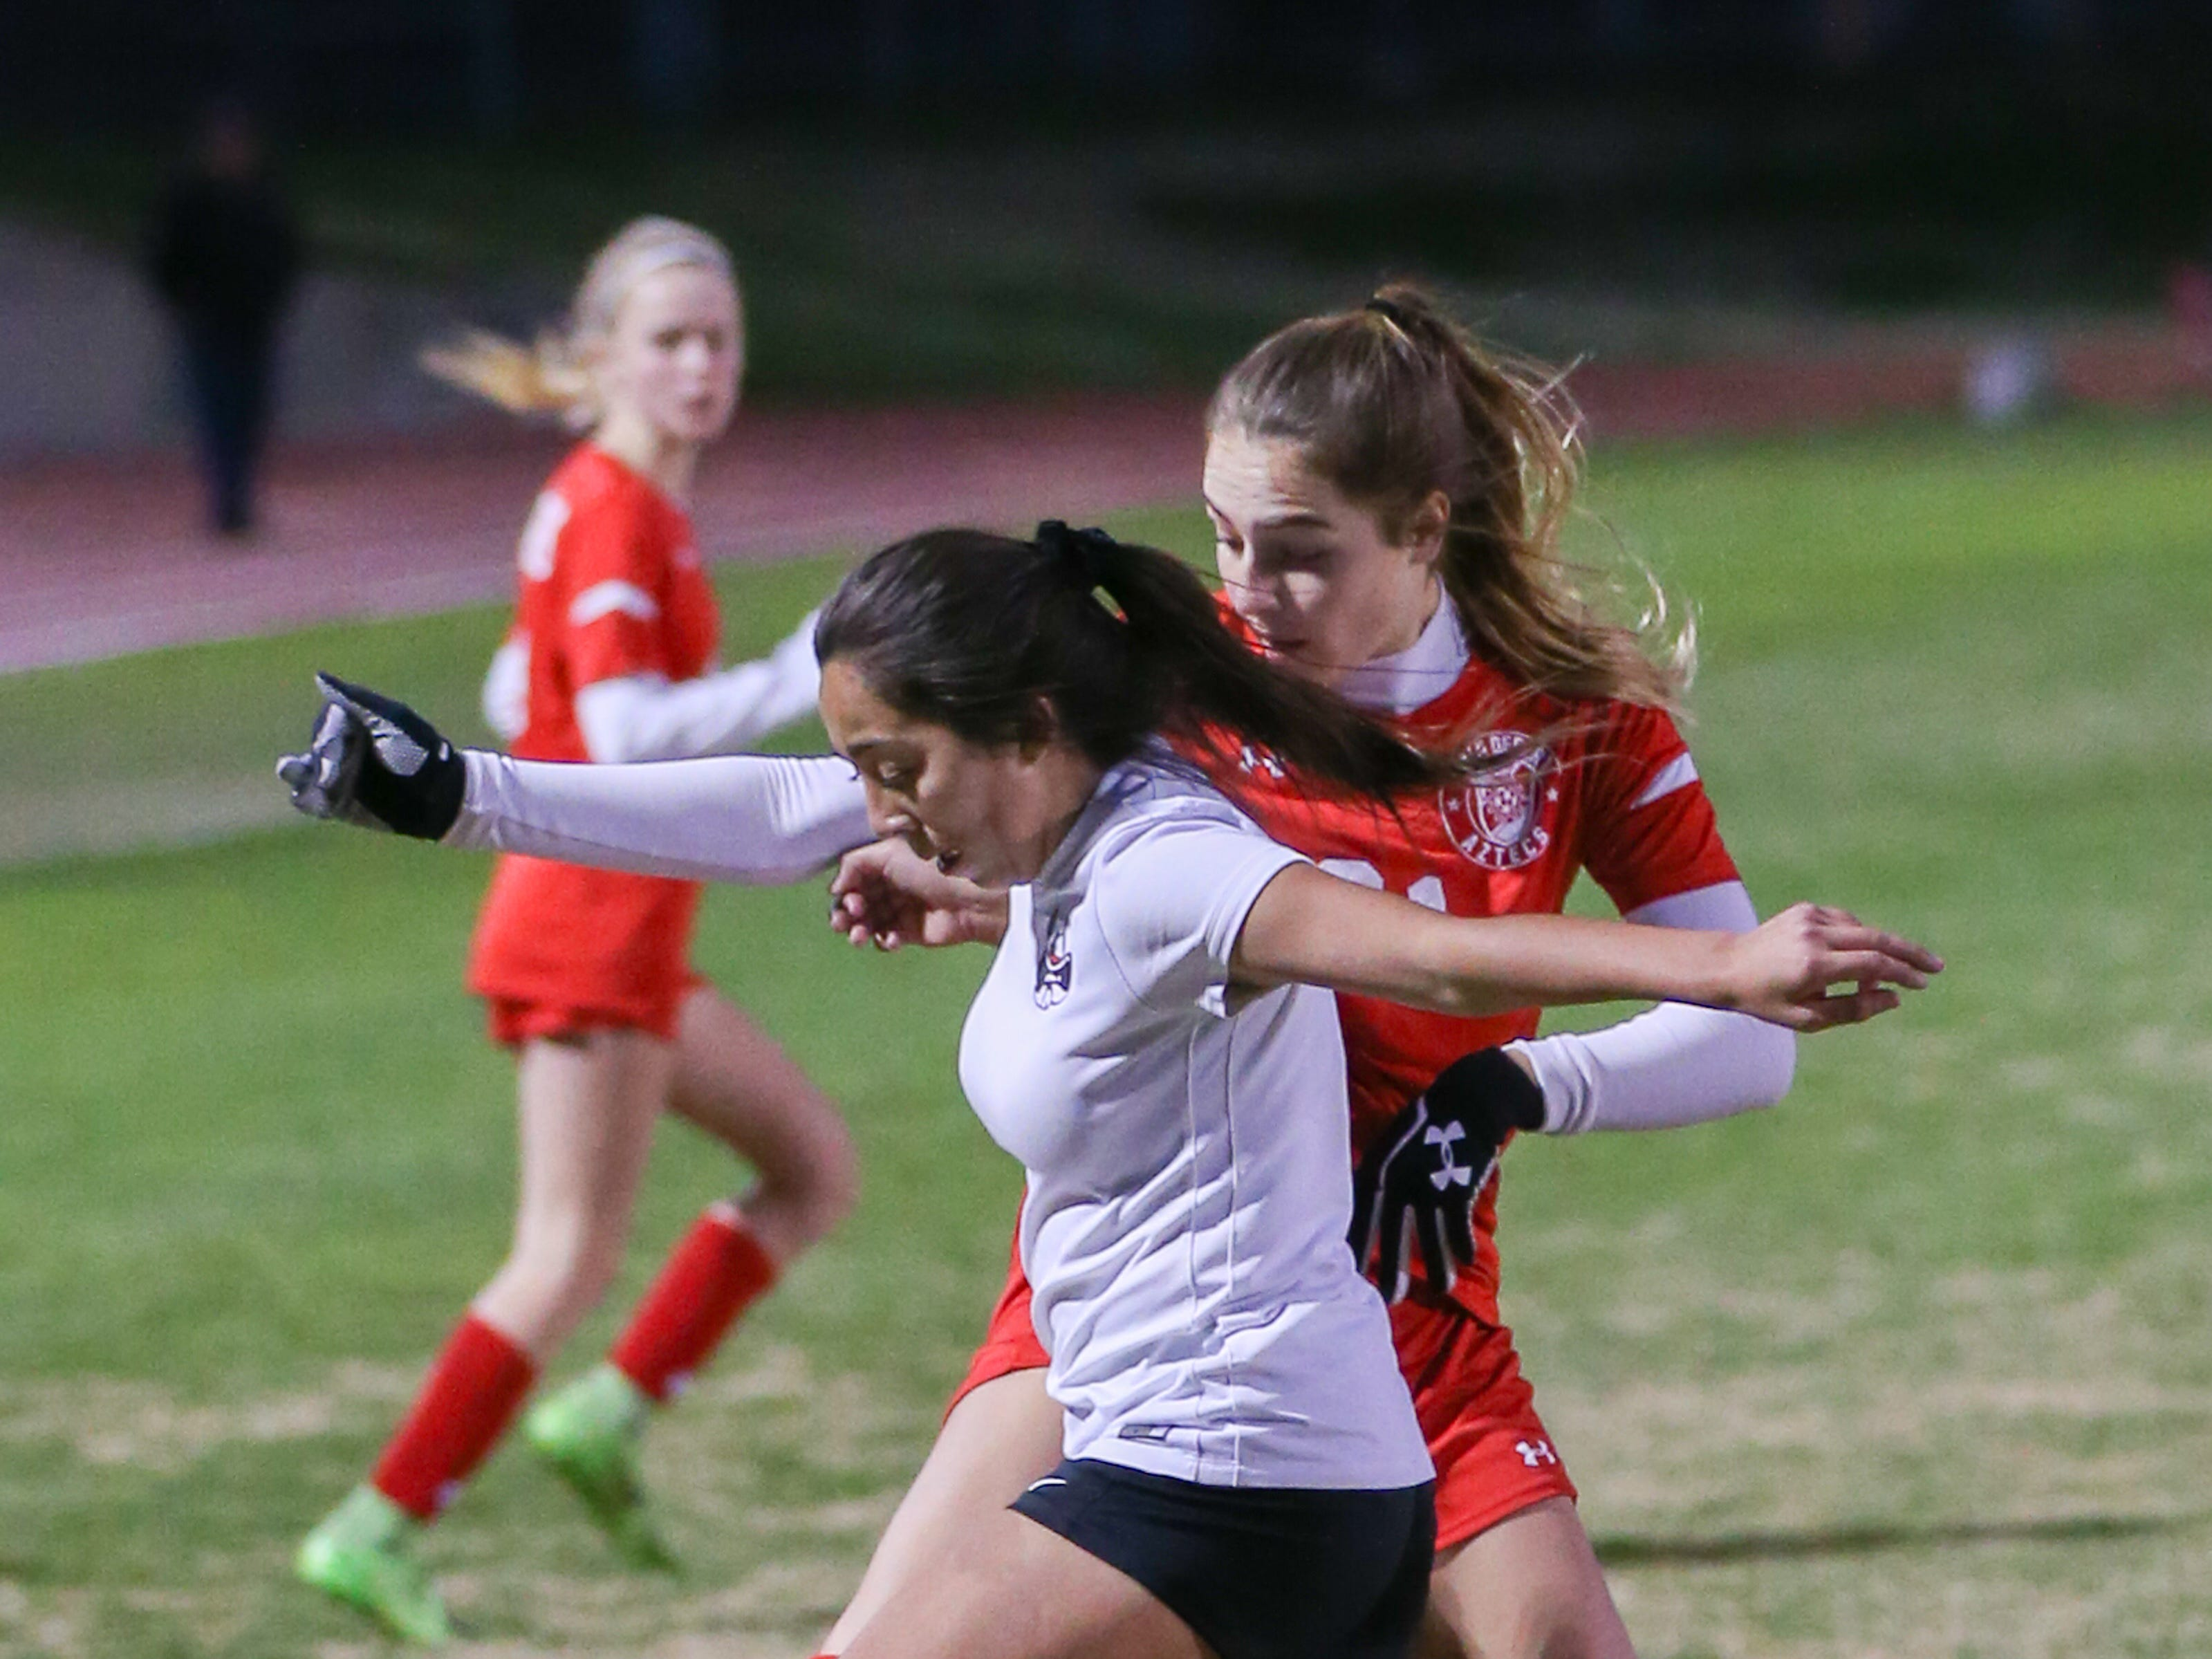 Ivana Gottwald sweeps the ball from the opponent. The Palm Desert varsity soccer team won Wednesday's home playoff game against Miller by a score of 5-1.